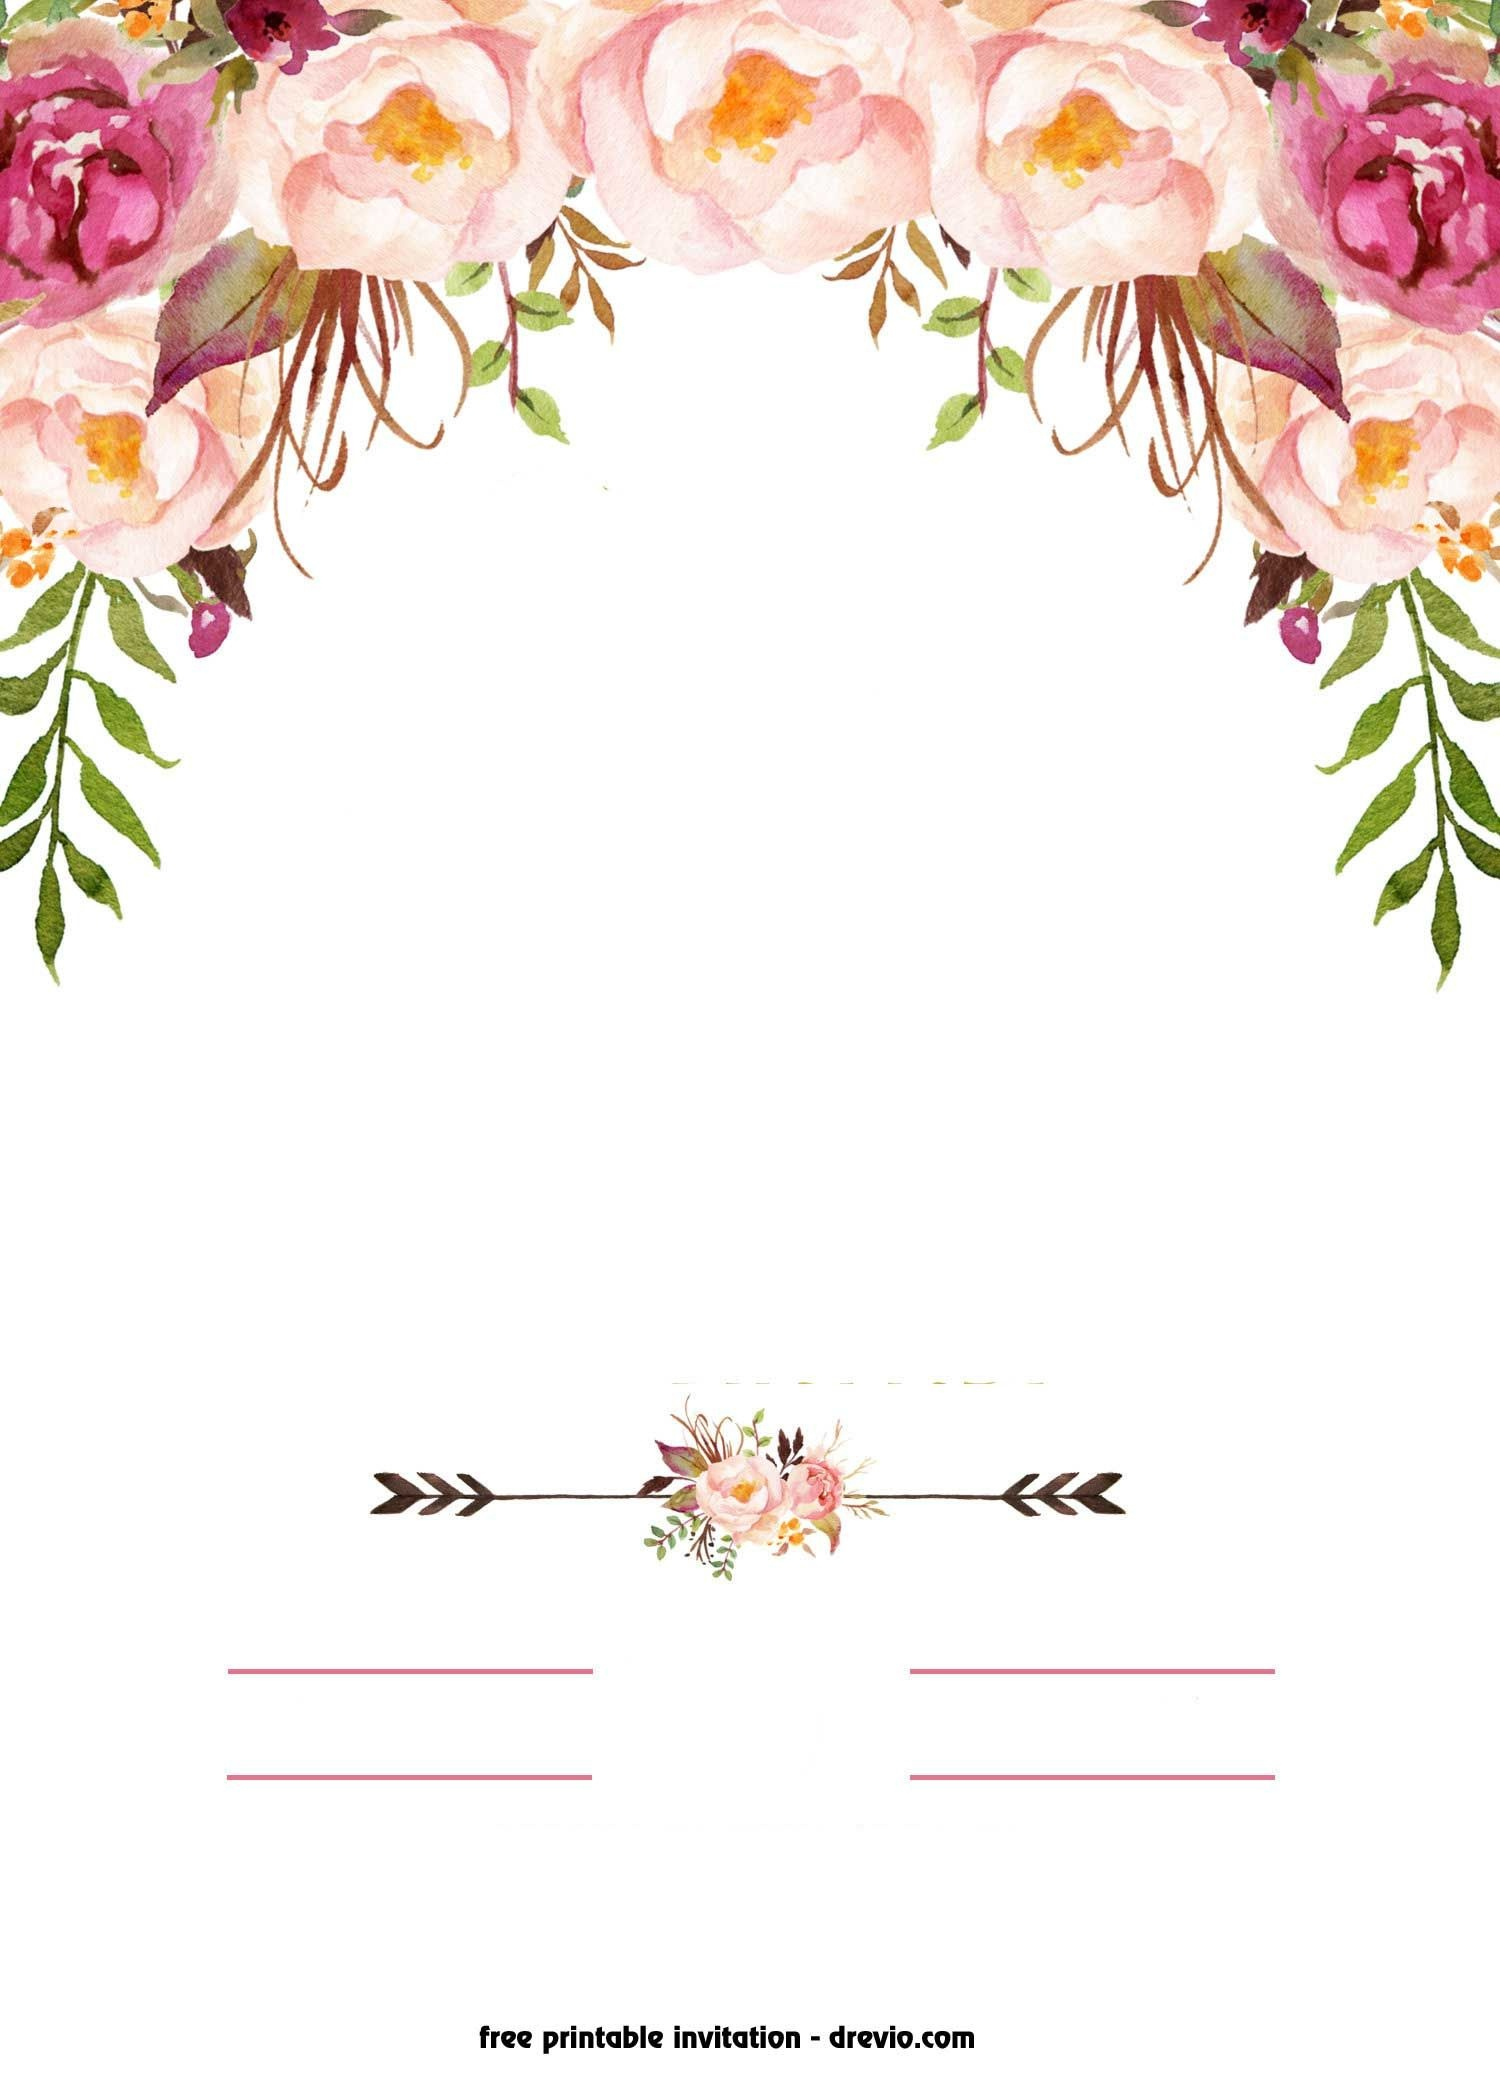 Free Printable Boho Chic Flower Baby Shower Invitation Template - Free Boho Baby Shower Printables